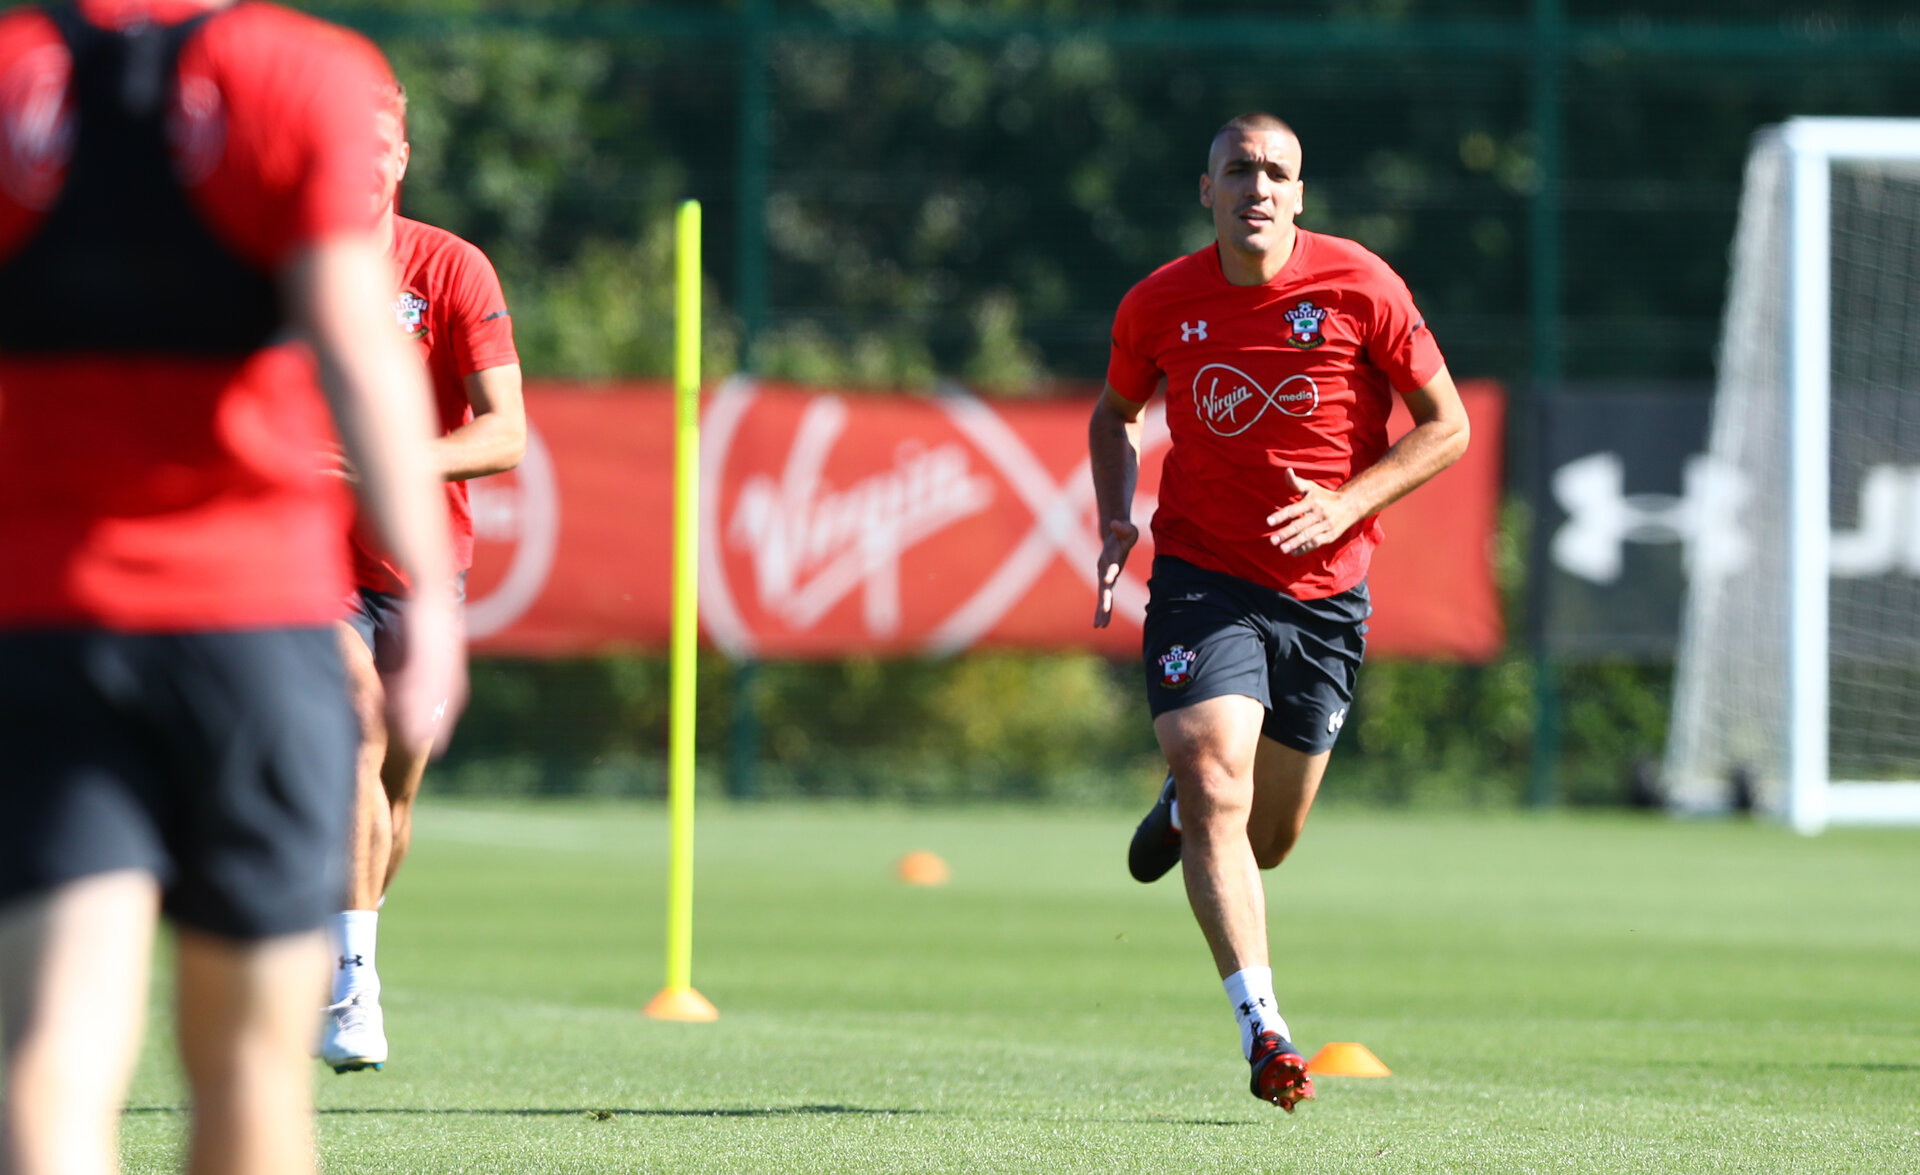 SOUTHAMPTON, ENGLAND - SEPTEMBER 13: Oriol Romeu during a Southampton FC training session at the Staplewood Campus on September 13, 2018 in Southampton, England. (Photo by Matt Watson/Southampton FC via Getty Images)